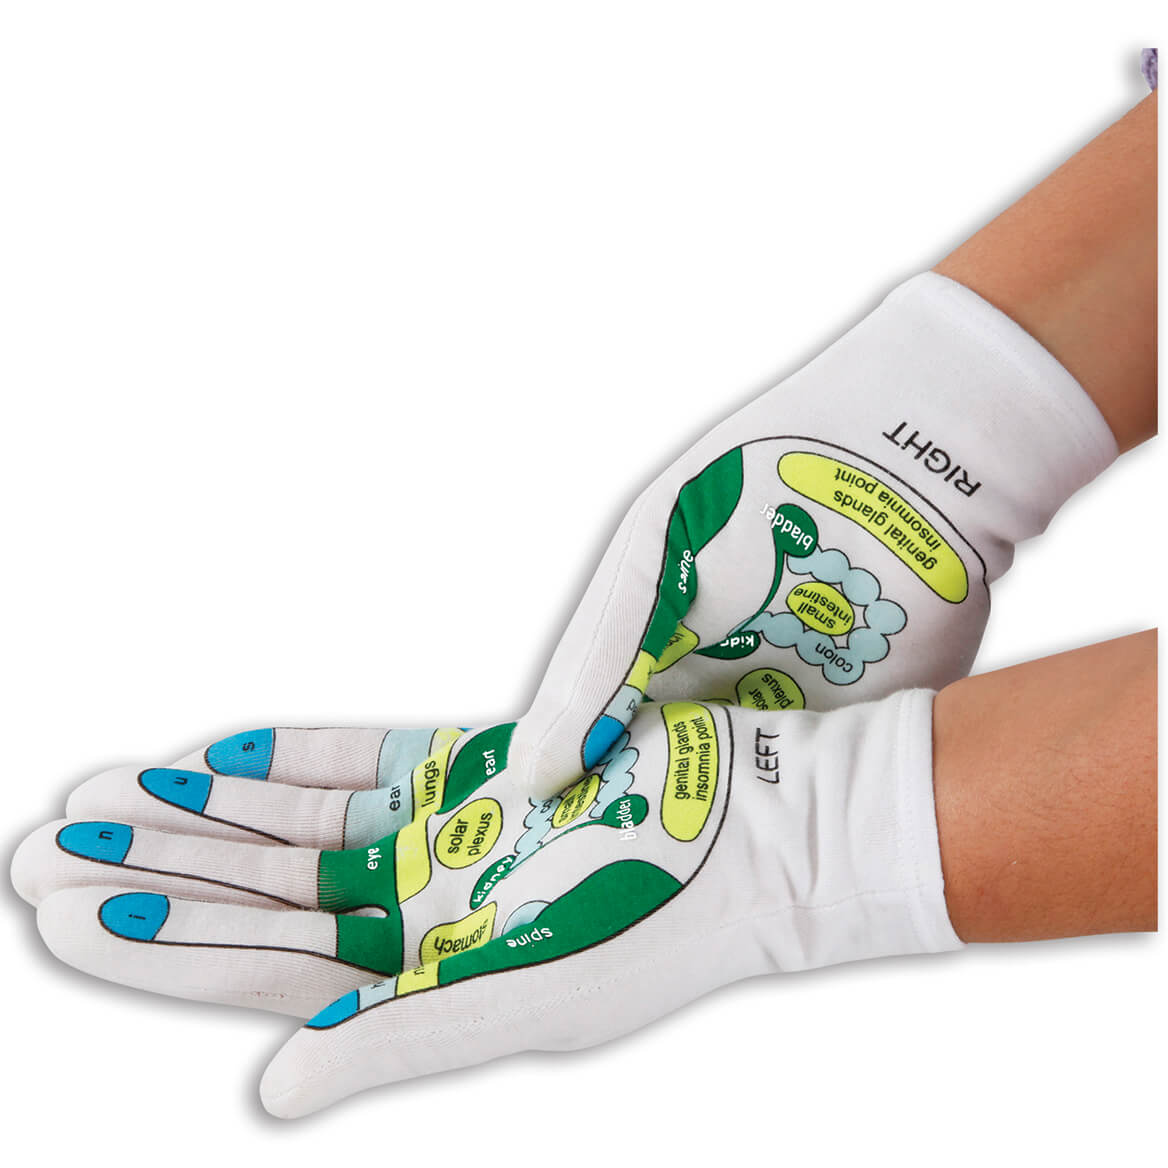 Acupressure Therapy Gloves Pair-370138